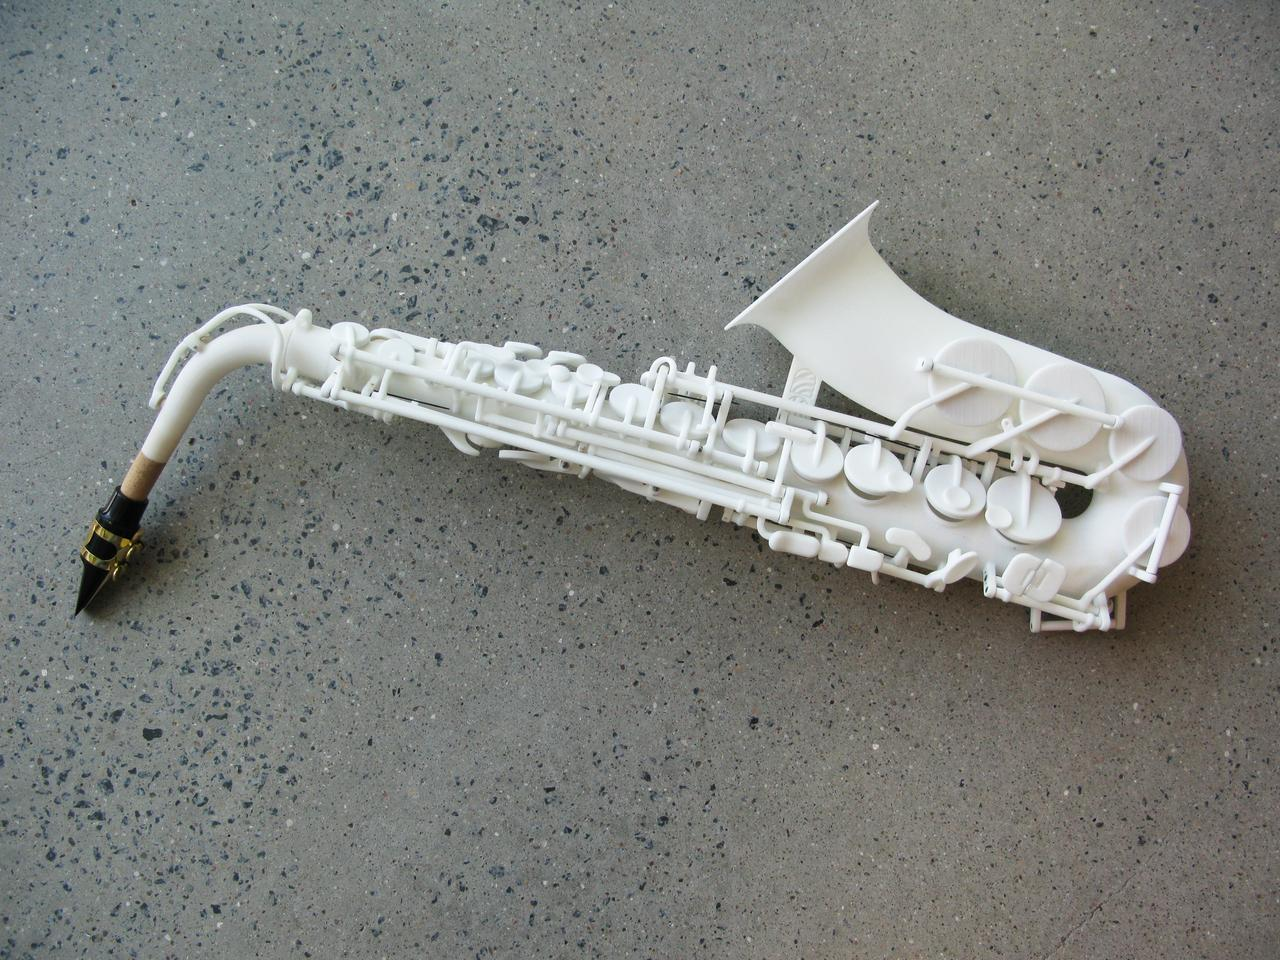 Olaf Diegel's prototype 3D-printed alto sax